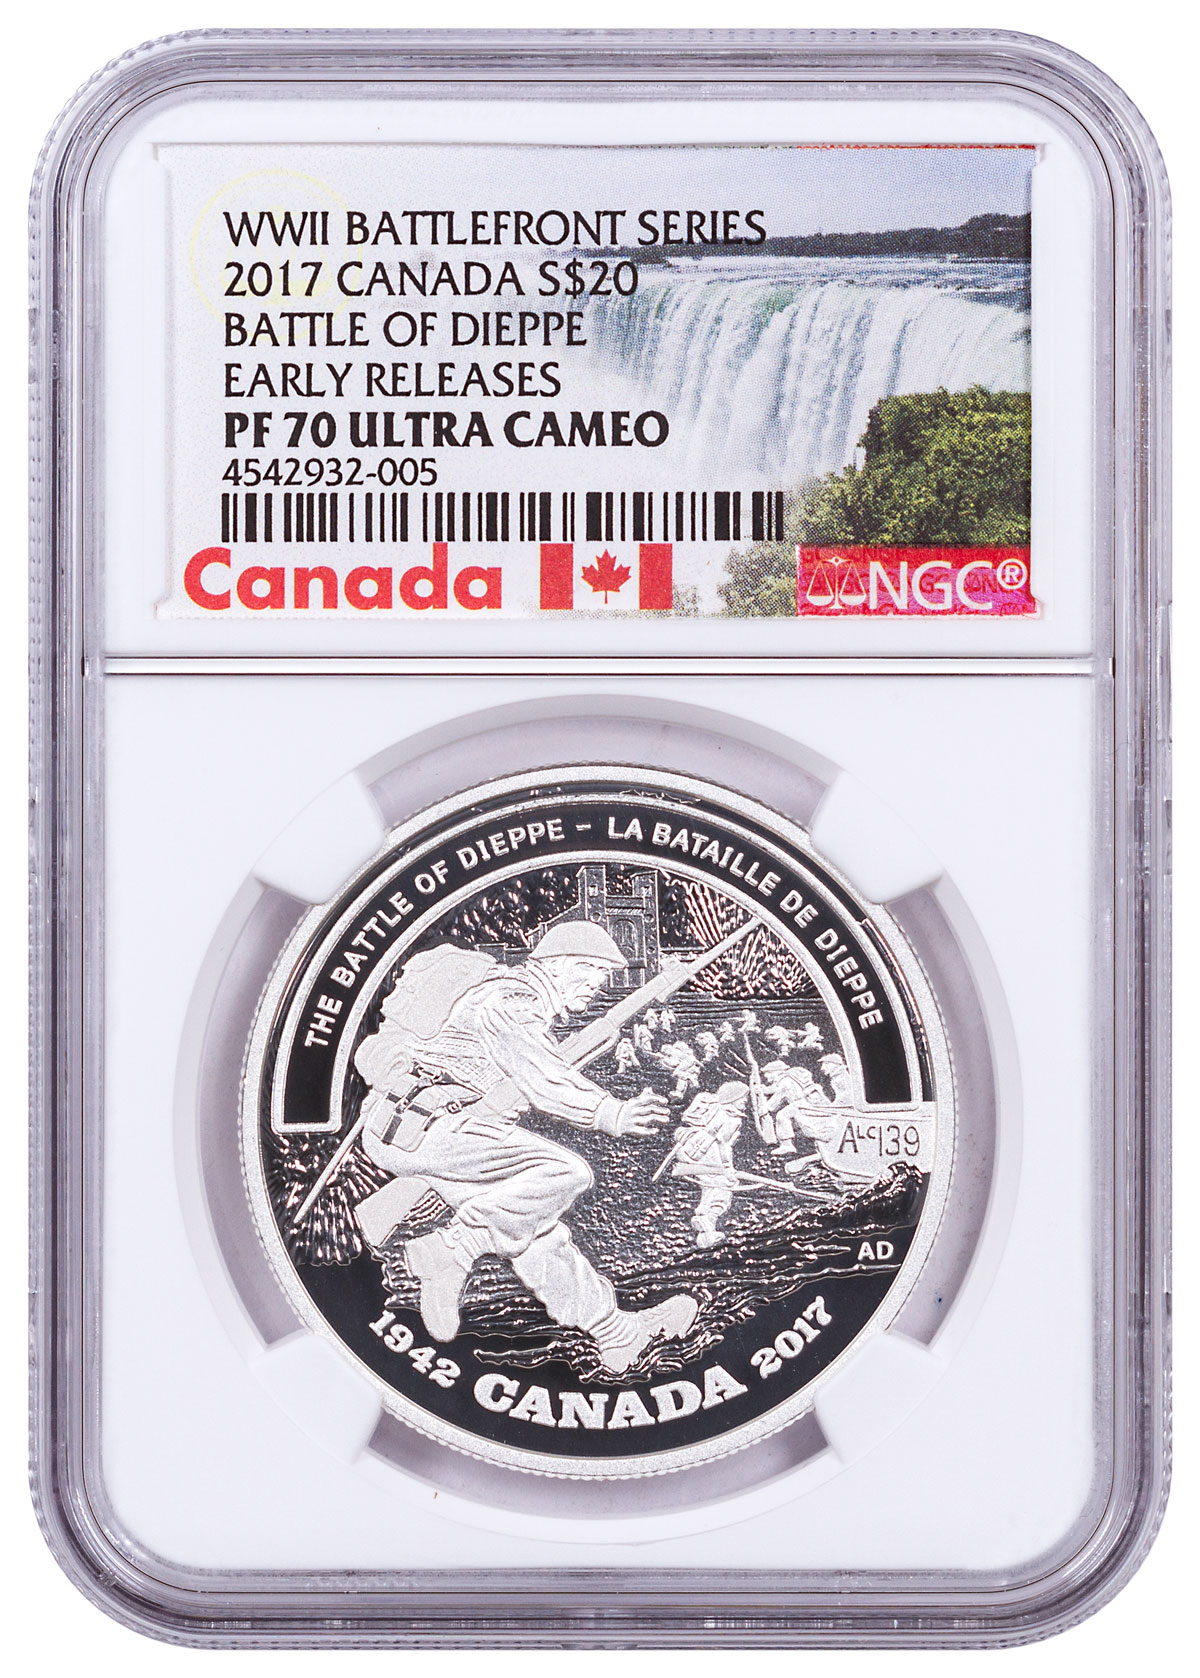 2017 Canada WWII Battlefront - Battle of Dieppe 1 oz Silver Proof $20 Coin NGC PF70 UC ER (Exclusive Canada Label)